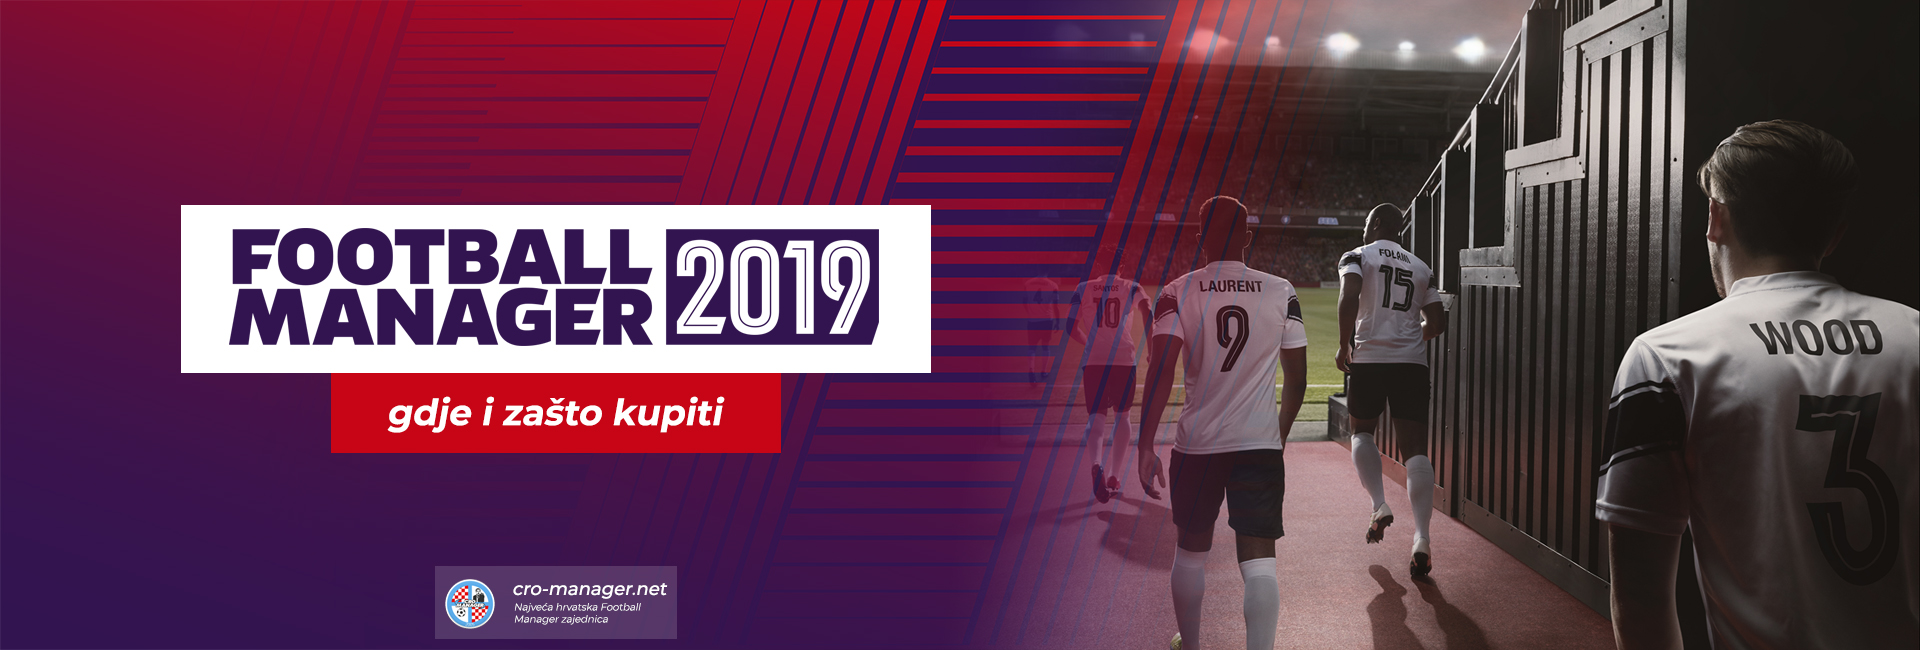 gdje-kupiti-football-manager-2019